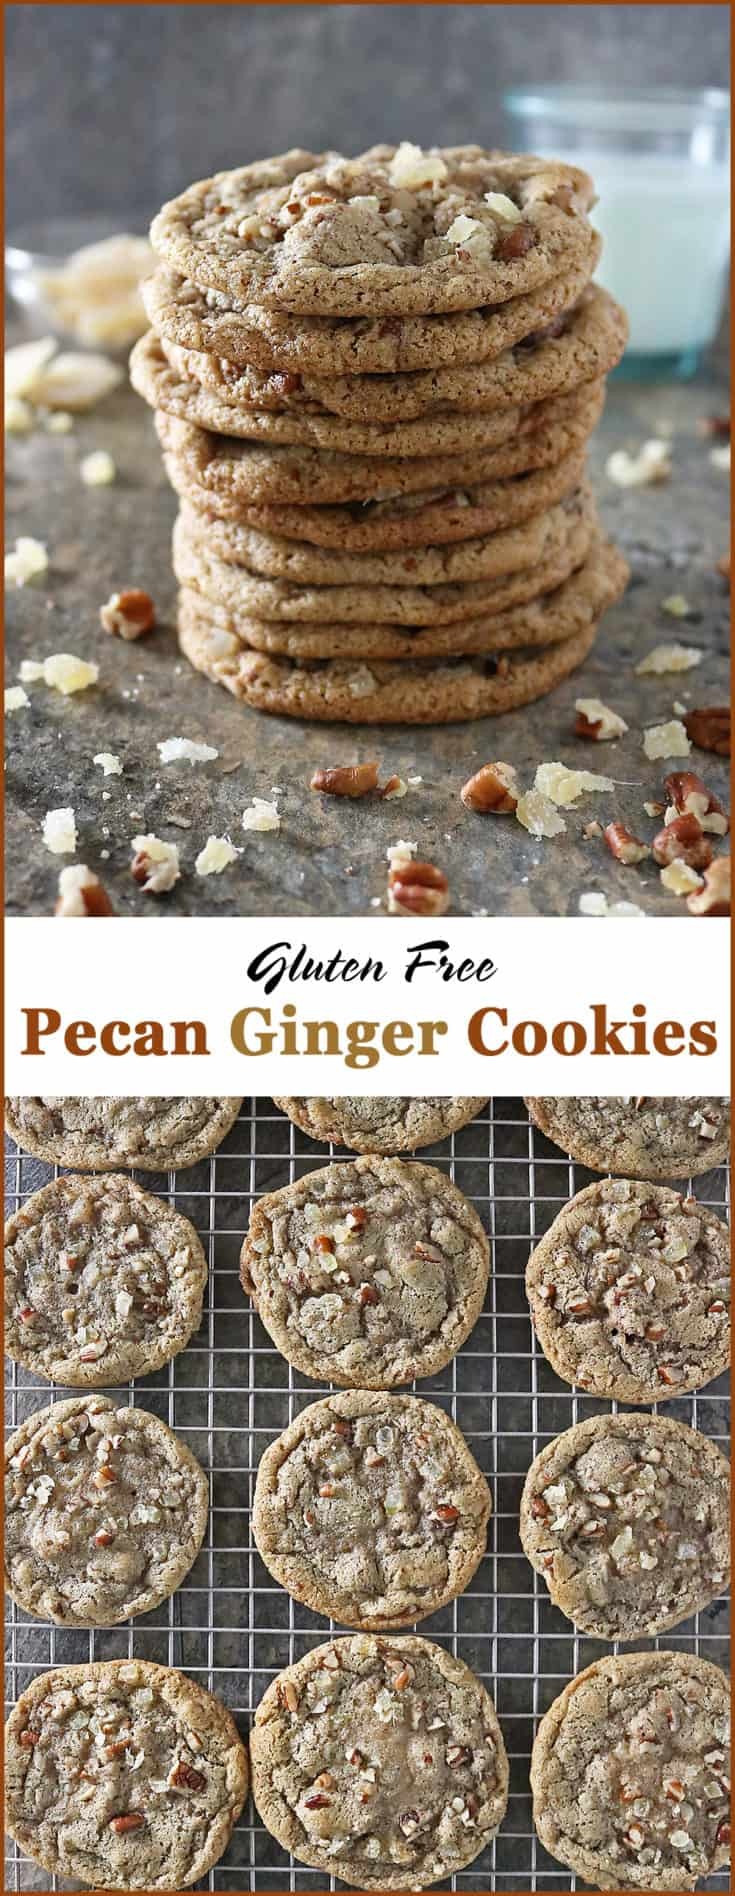 #ad Gluten Free Pecan Ginger Cookies Prepped with FoodSaver® FM5330 Vacuum Sealing System And FoodSaver® 6 pk Heat Seal Rolls #PrepNowSavorLater #StockPrepWin